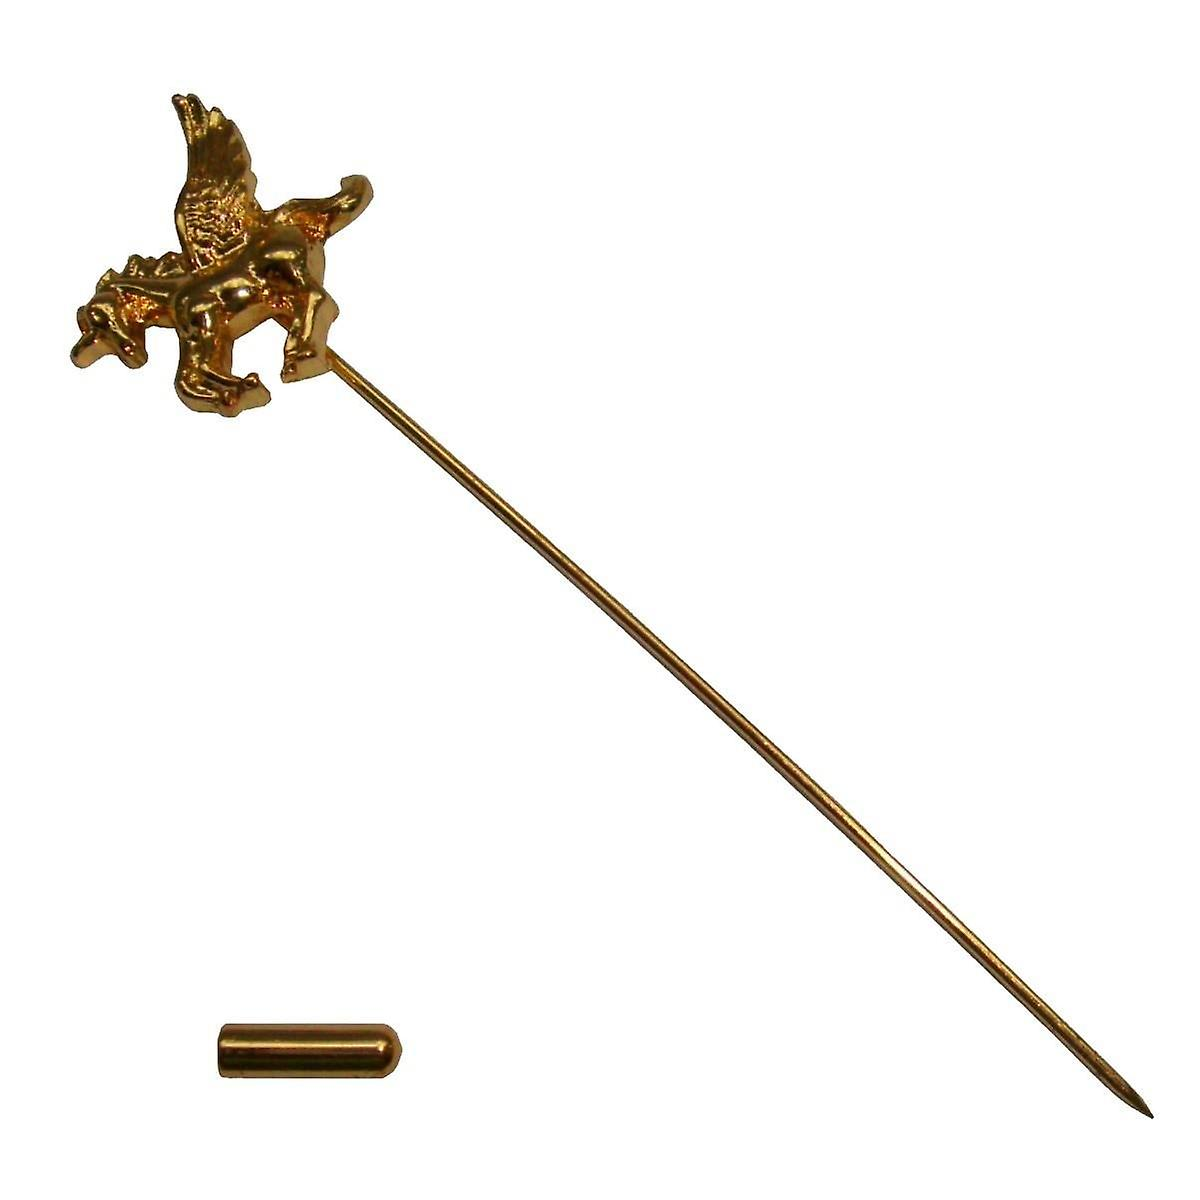 Bassin and Brown Unicorn Lapel Pin - Gold